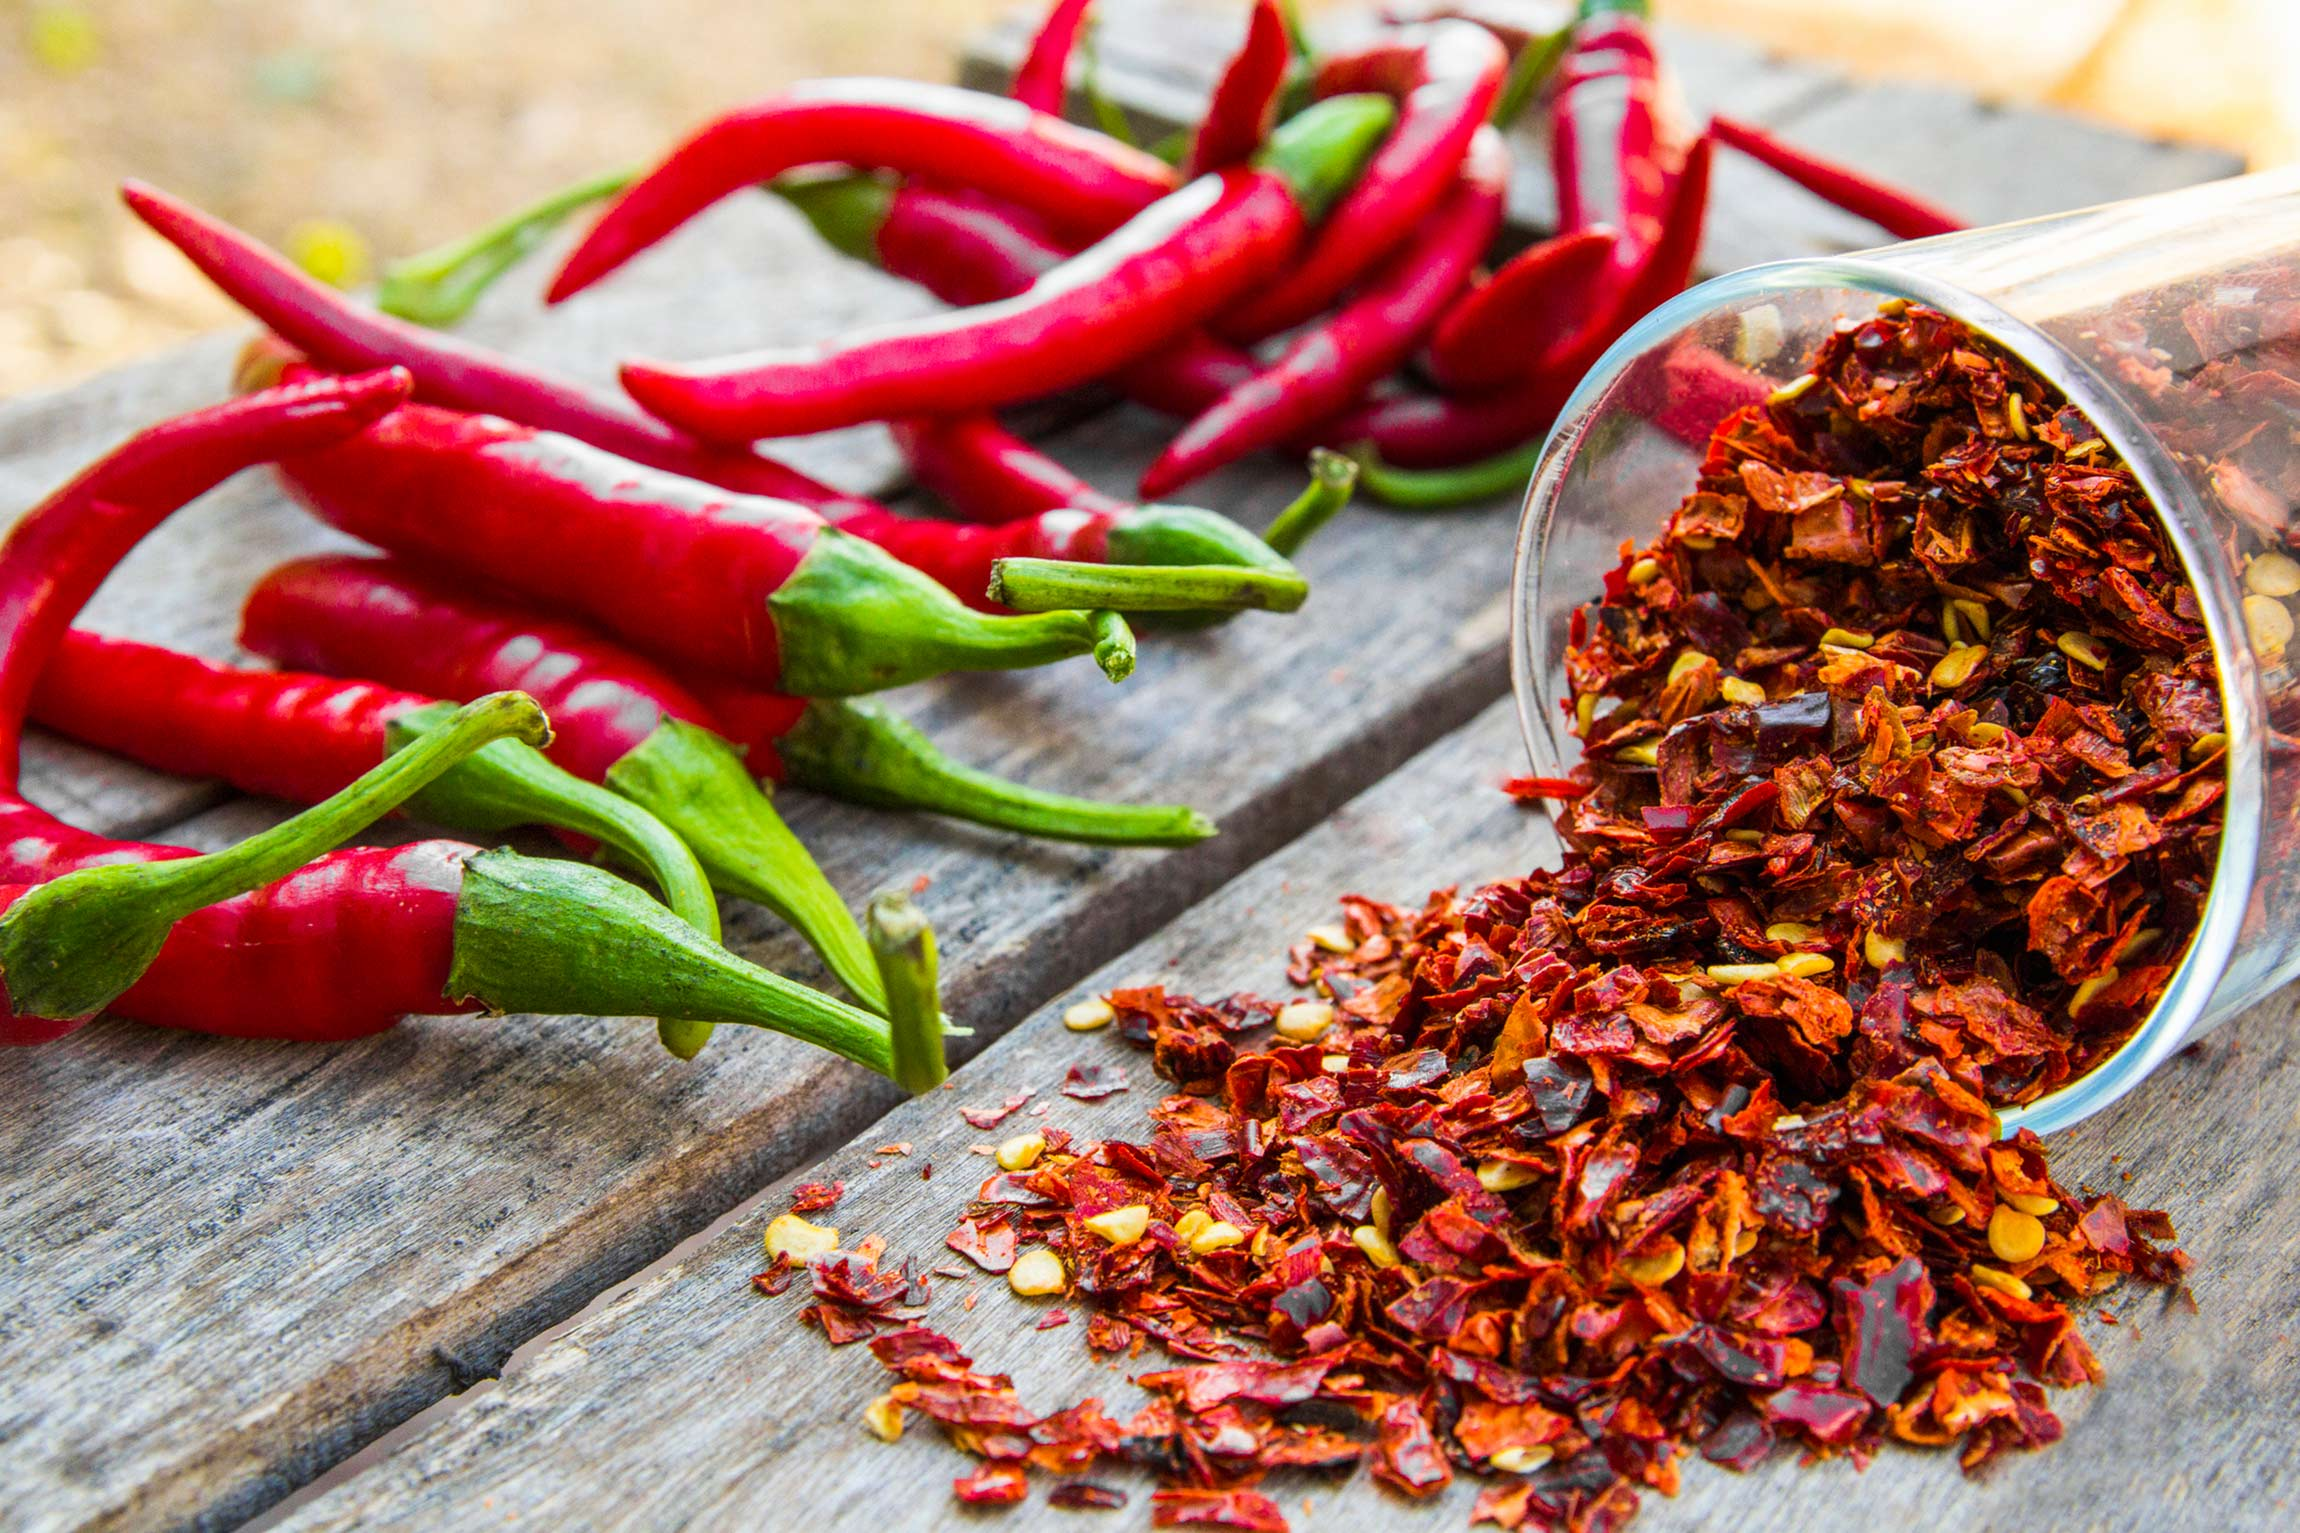 Healthy spices: pepper